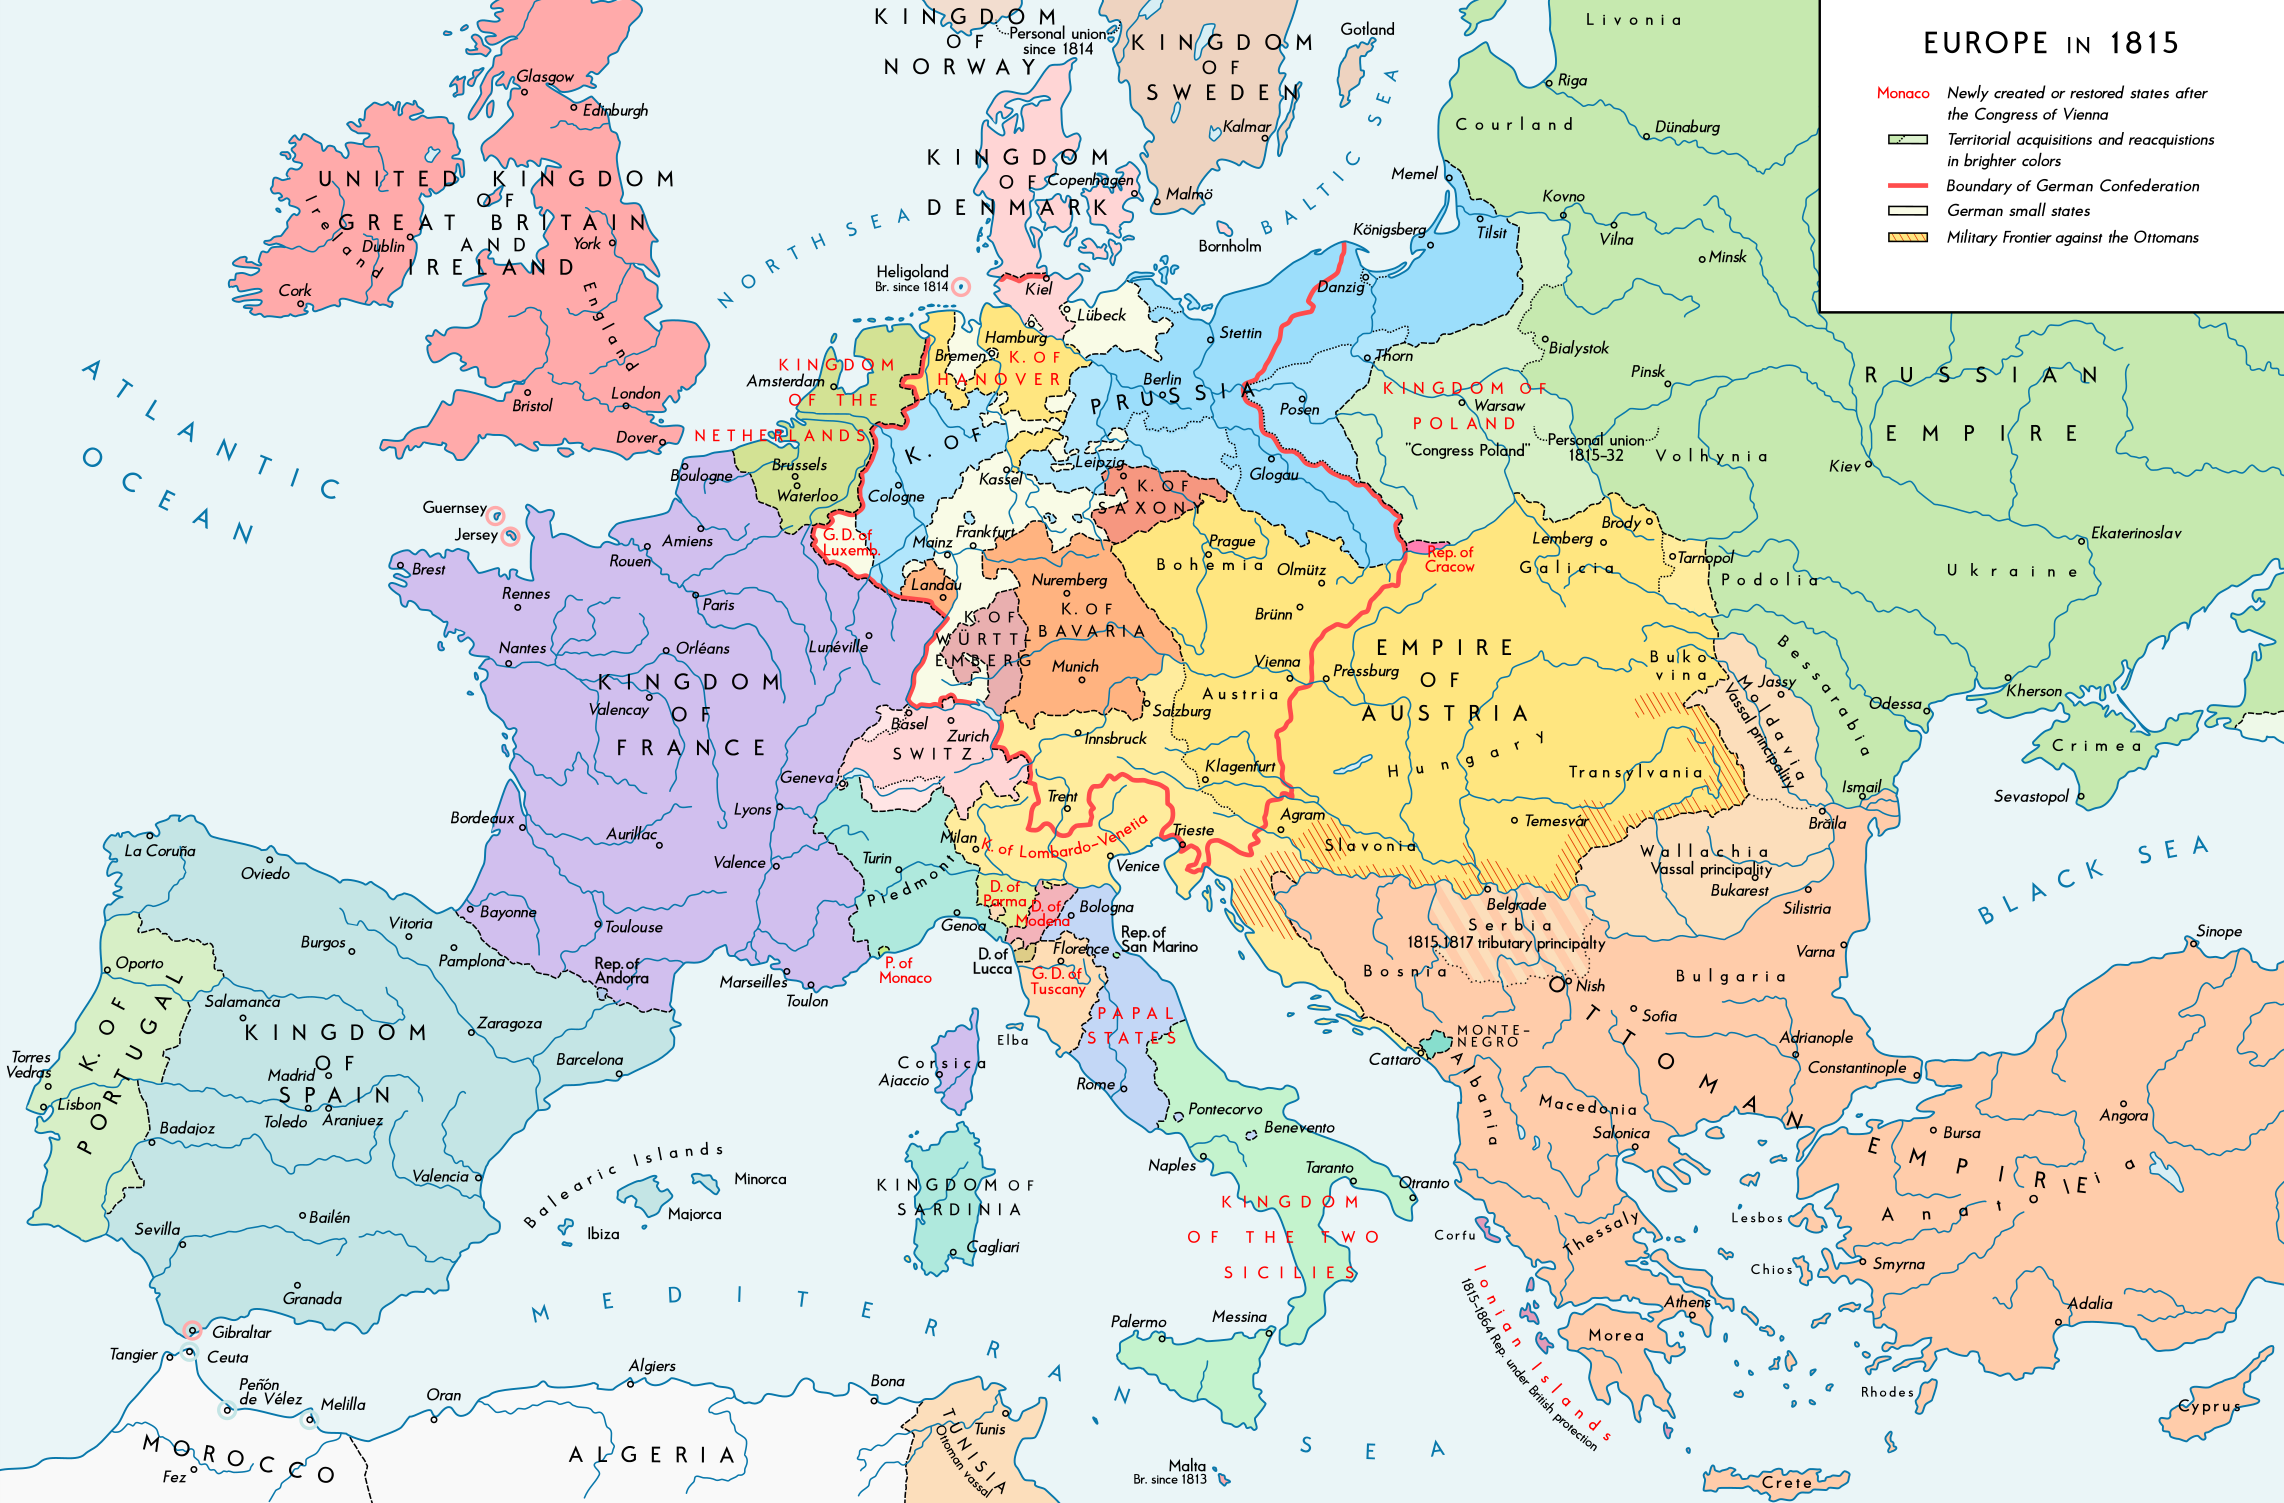 FileEurope 1815 map enpng Wikimedia Commons